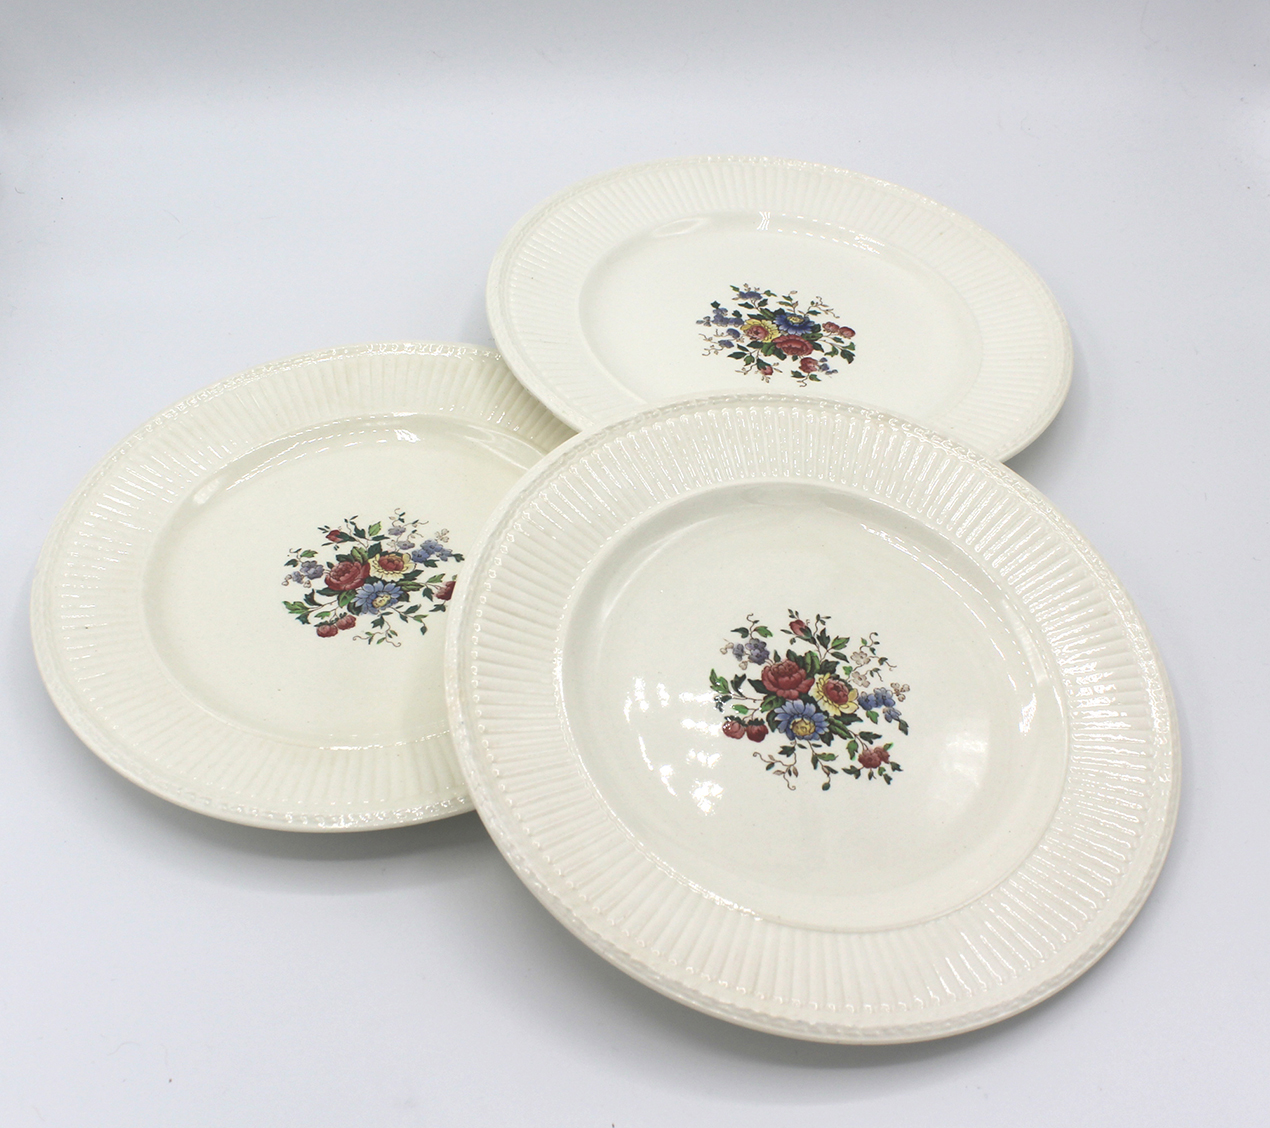 Vintage 1930s Wedgwood Conway Edme Dessert Pie Plates Set | Whispering City RVA